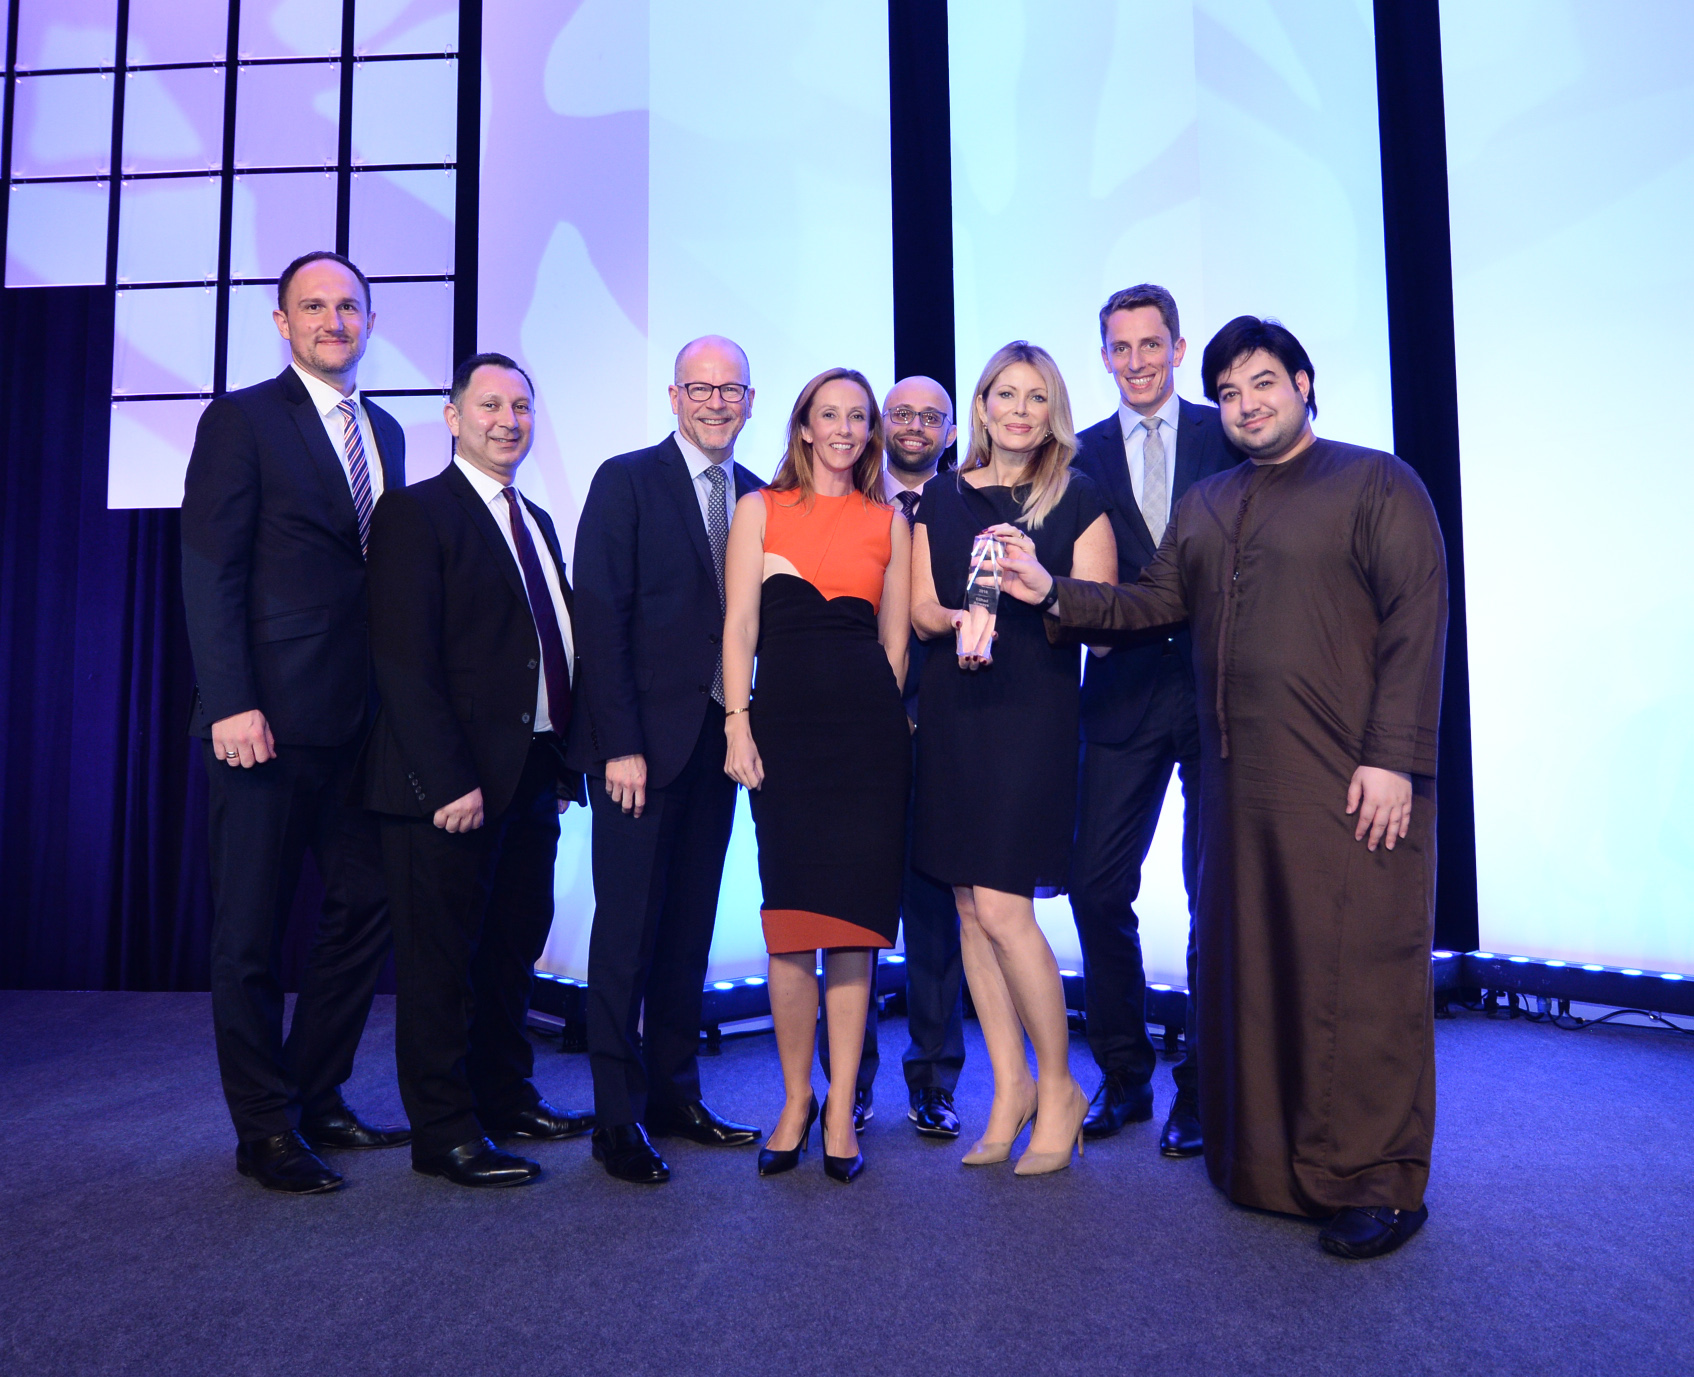 etihad-airways-team-accepts-best-original-video-award-2016